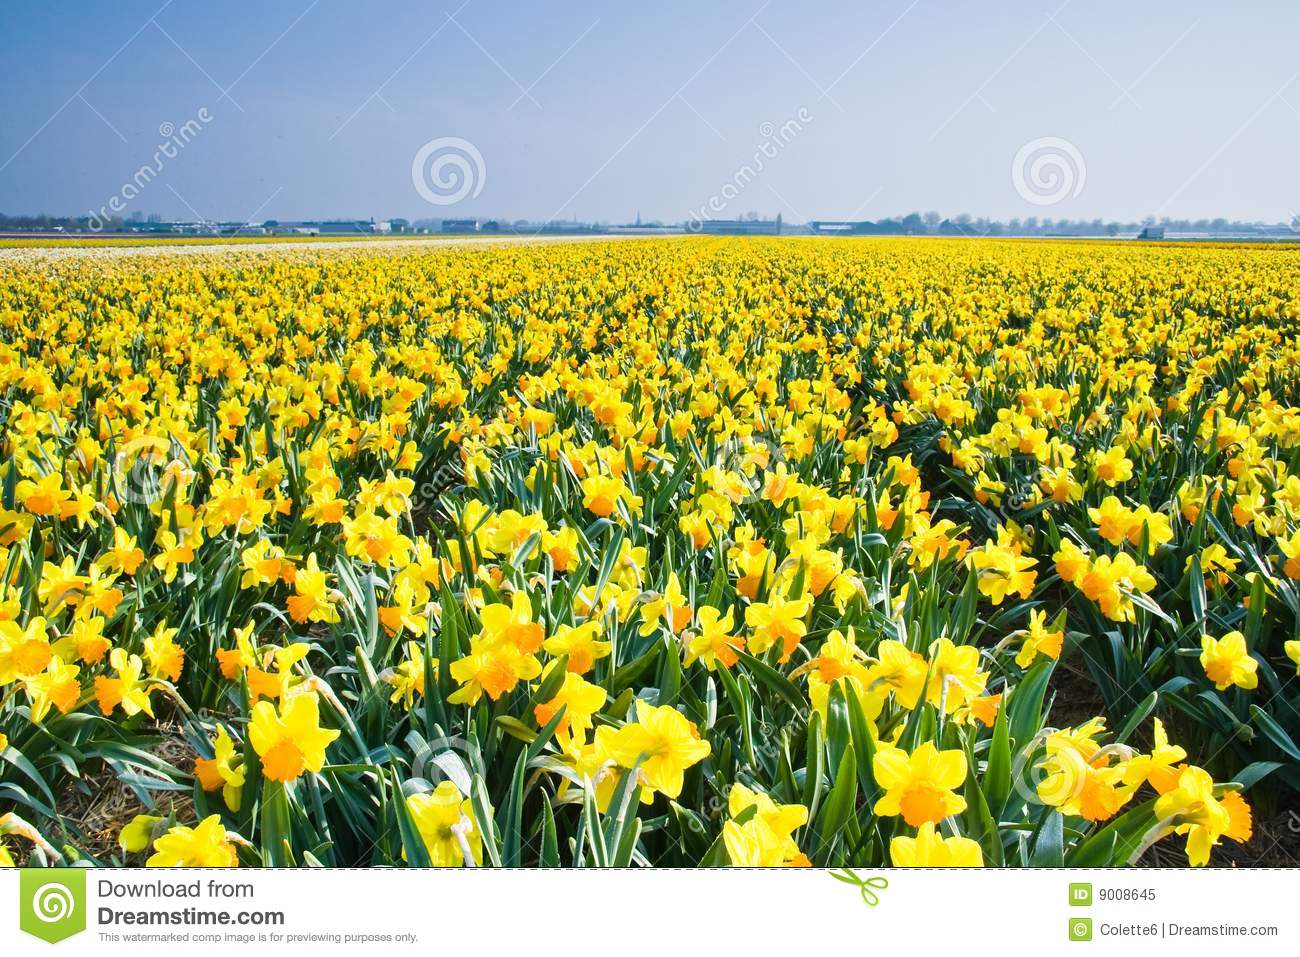 Field With Yellow Daffodils In April Royalty Free Stock Photo.